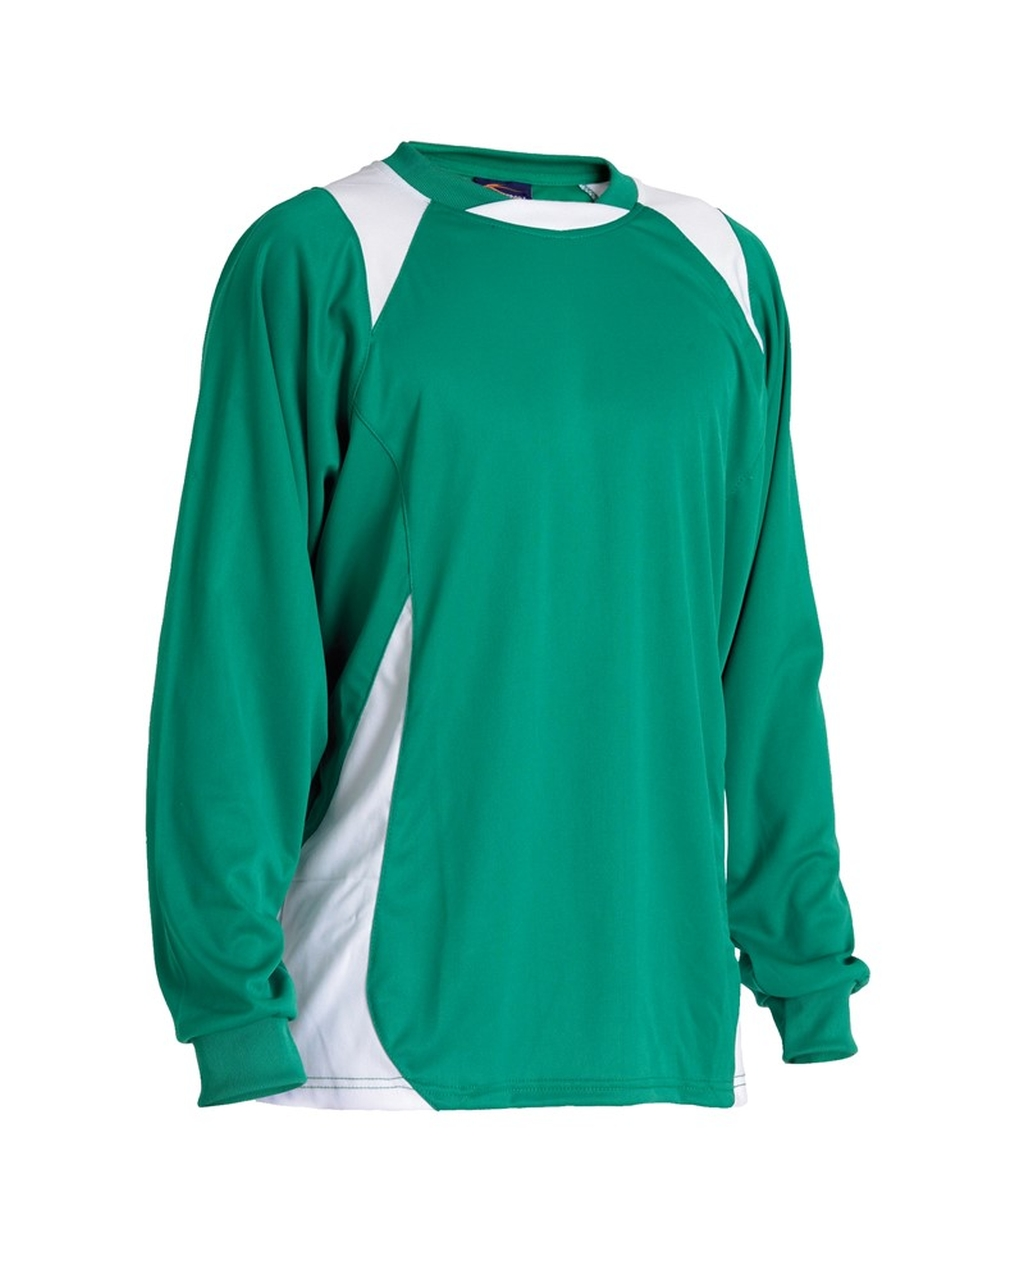 Panelled Soccer Shirt - 34/36